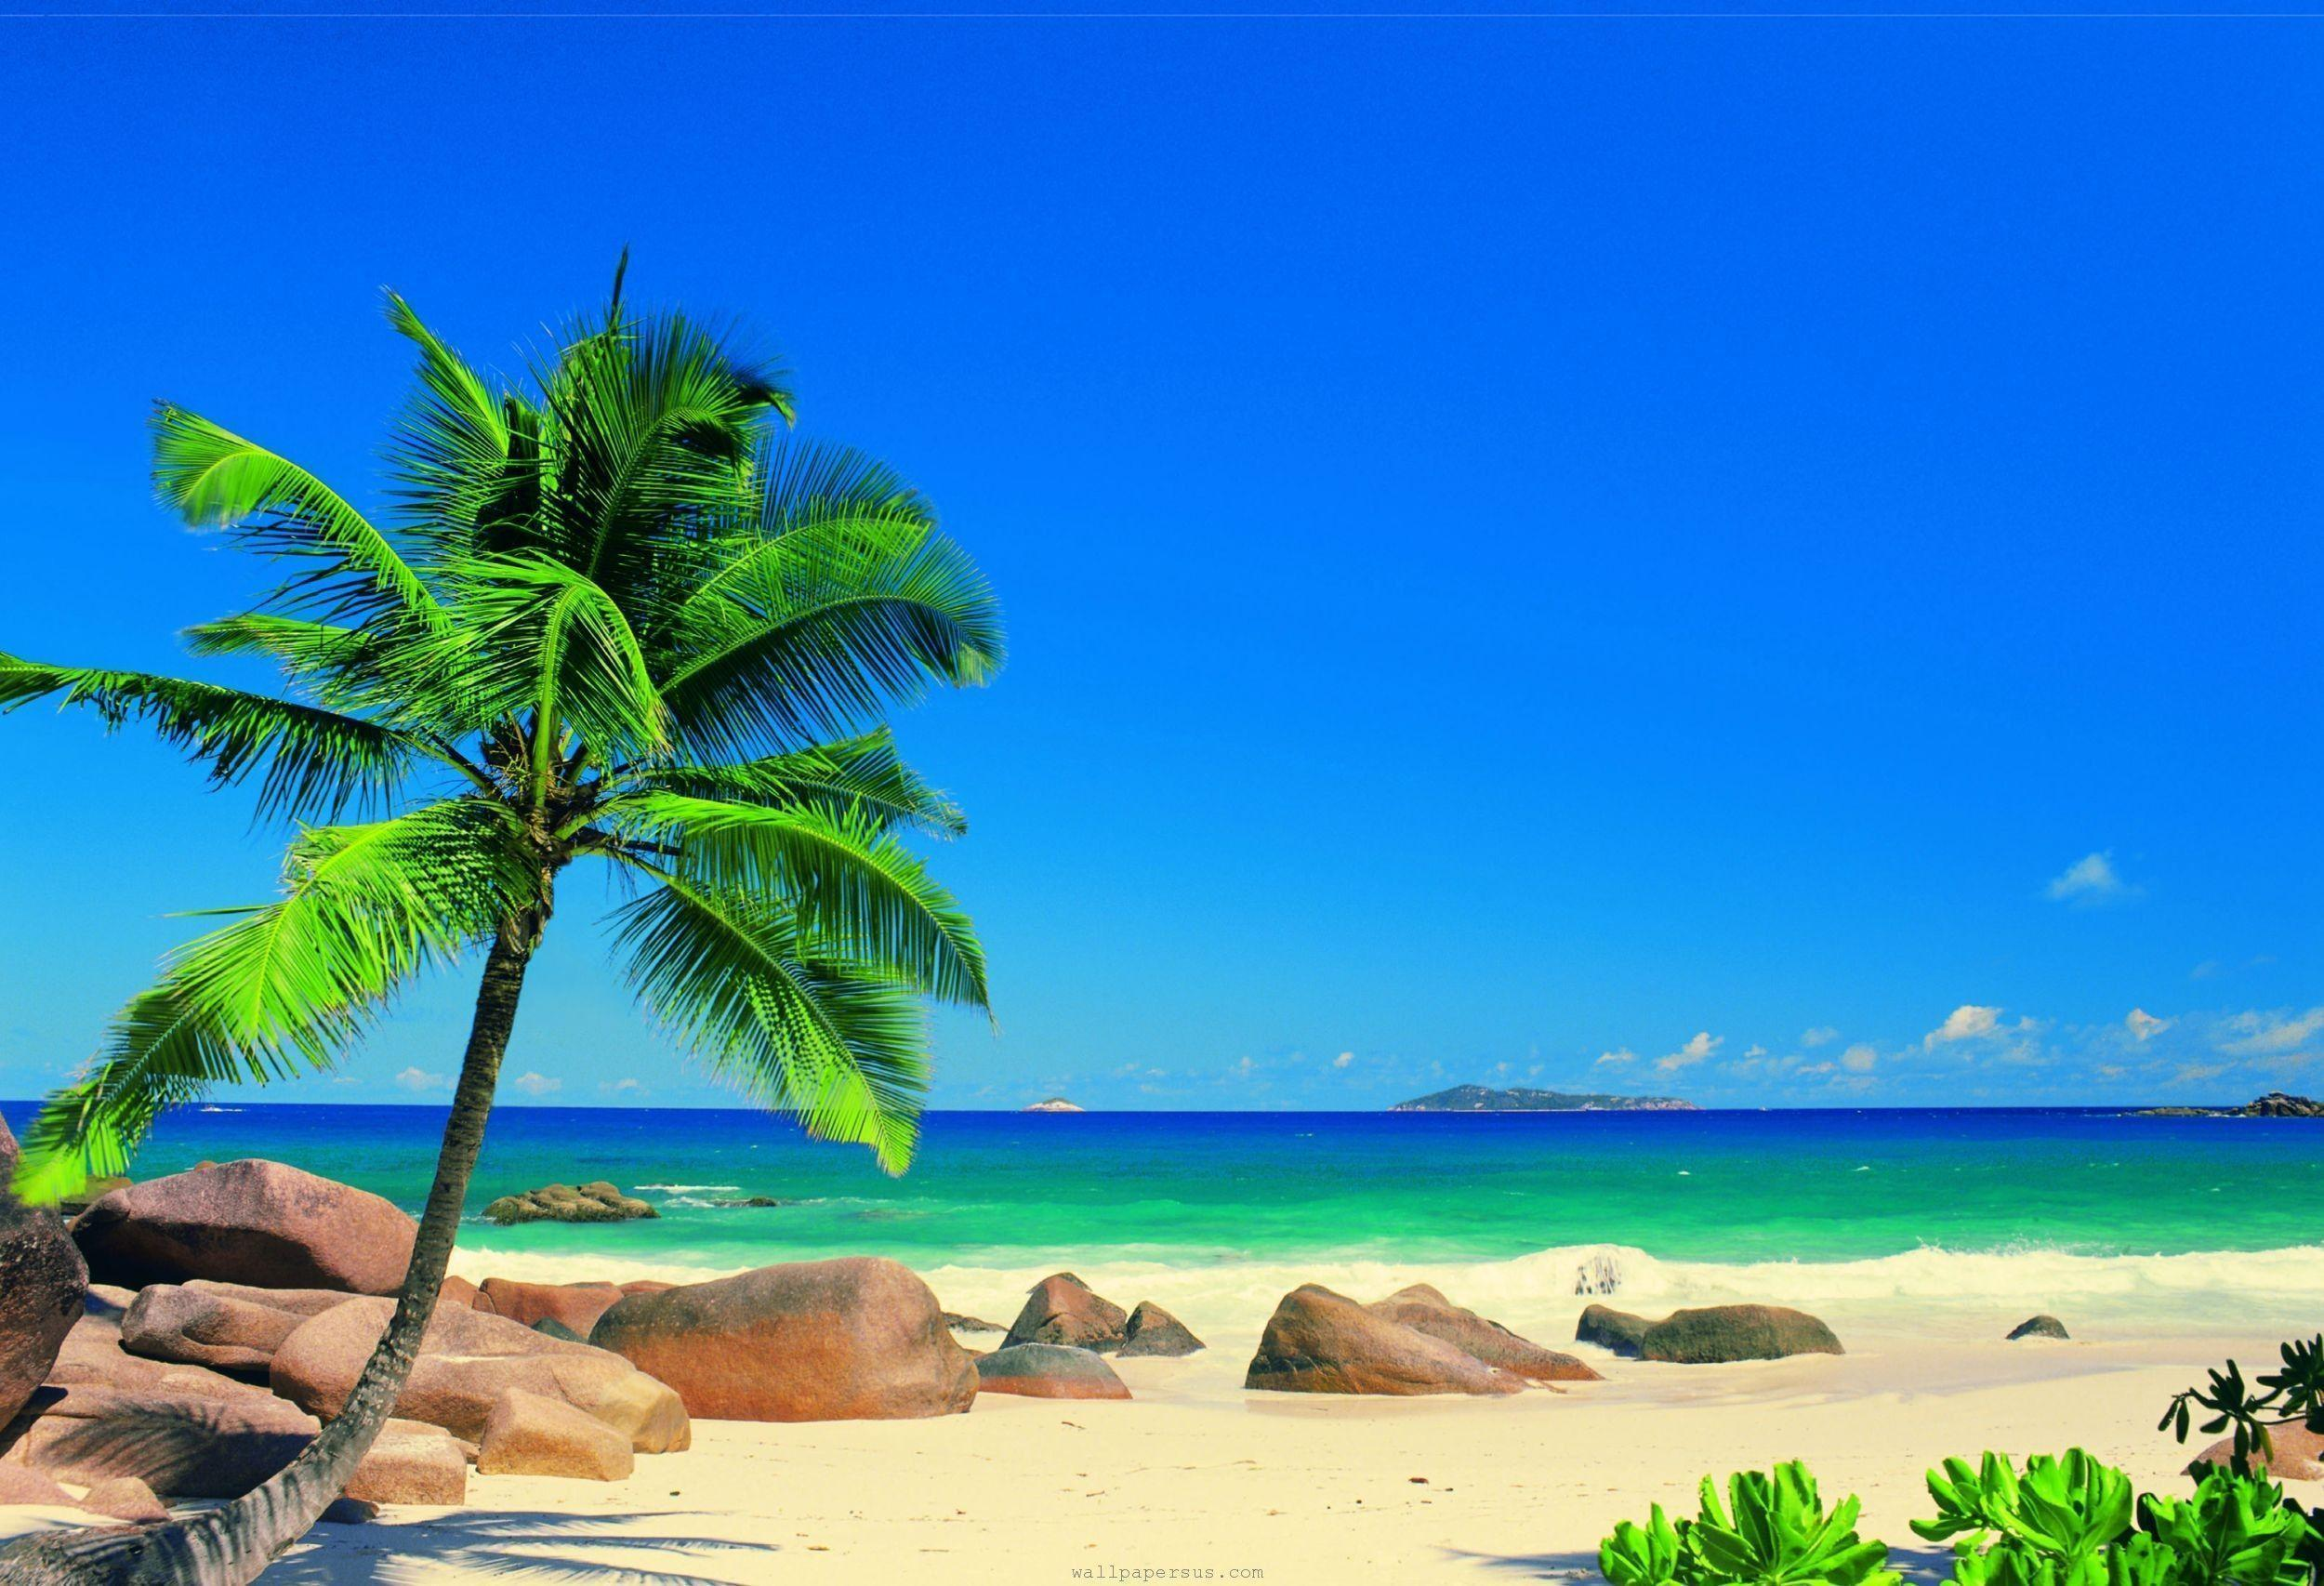 Exotic Beaches Wallpapers Hd Background 9 HD Wallpapers | aladdino.